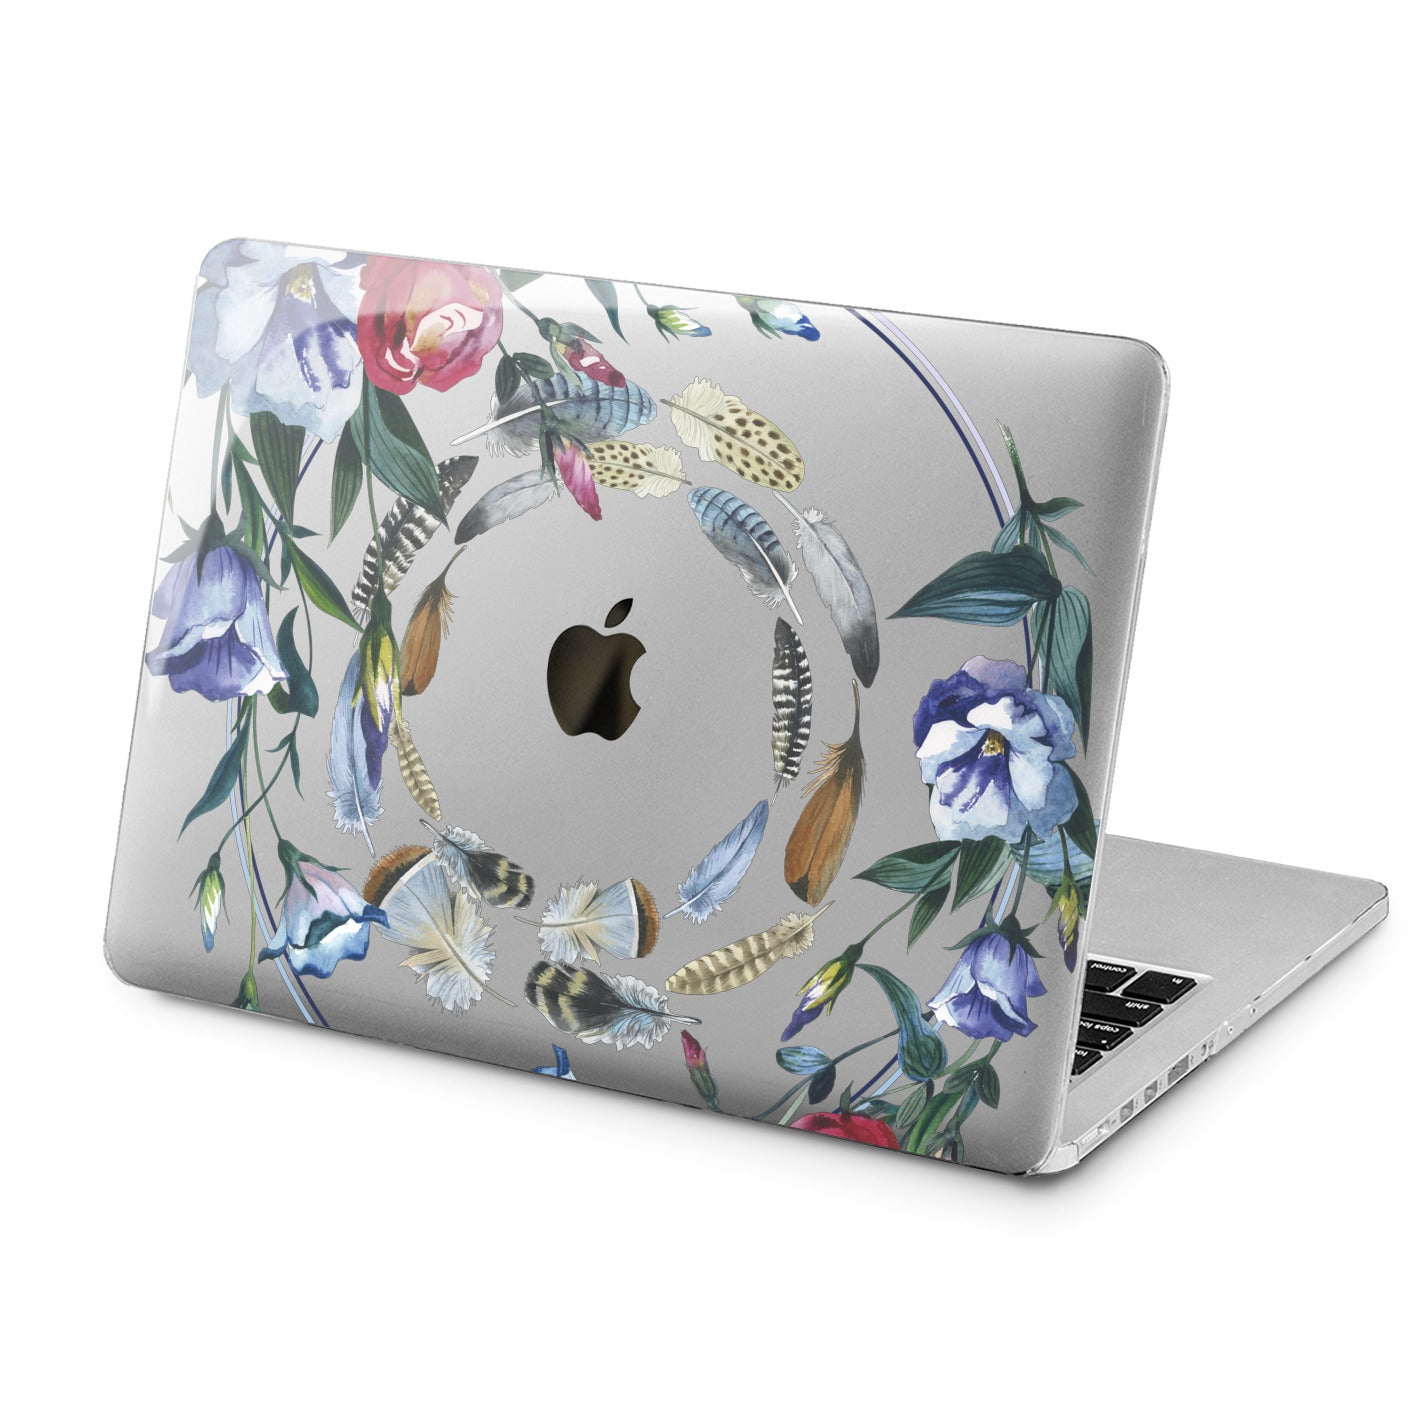 Lex Altern Floral Feathers Print Case for your Laptop Apple Macbook.